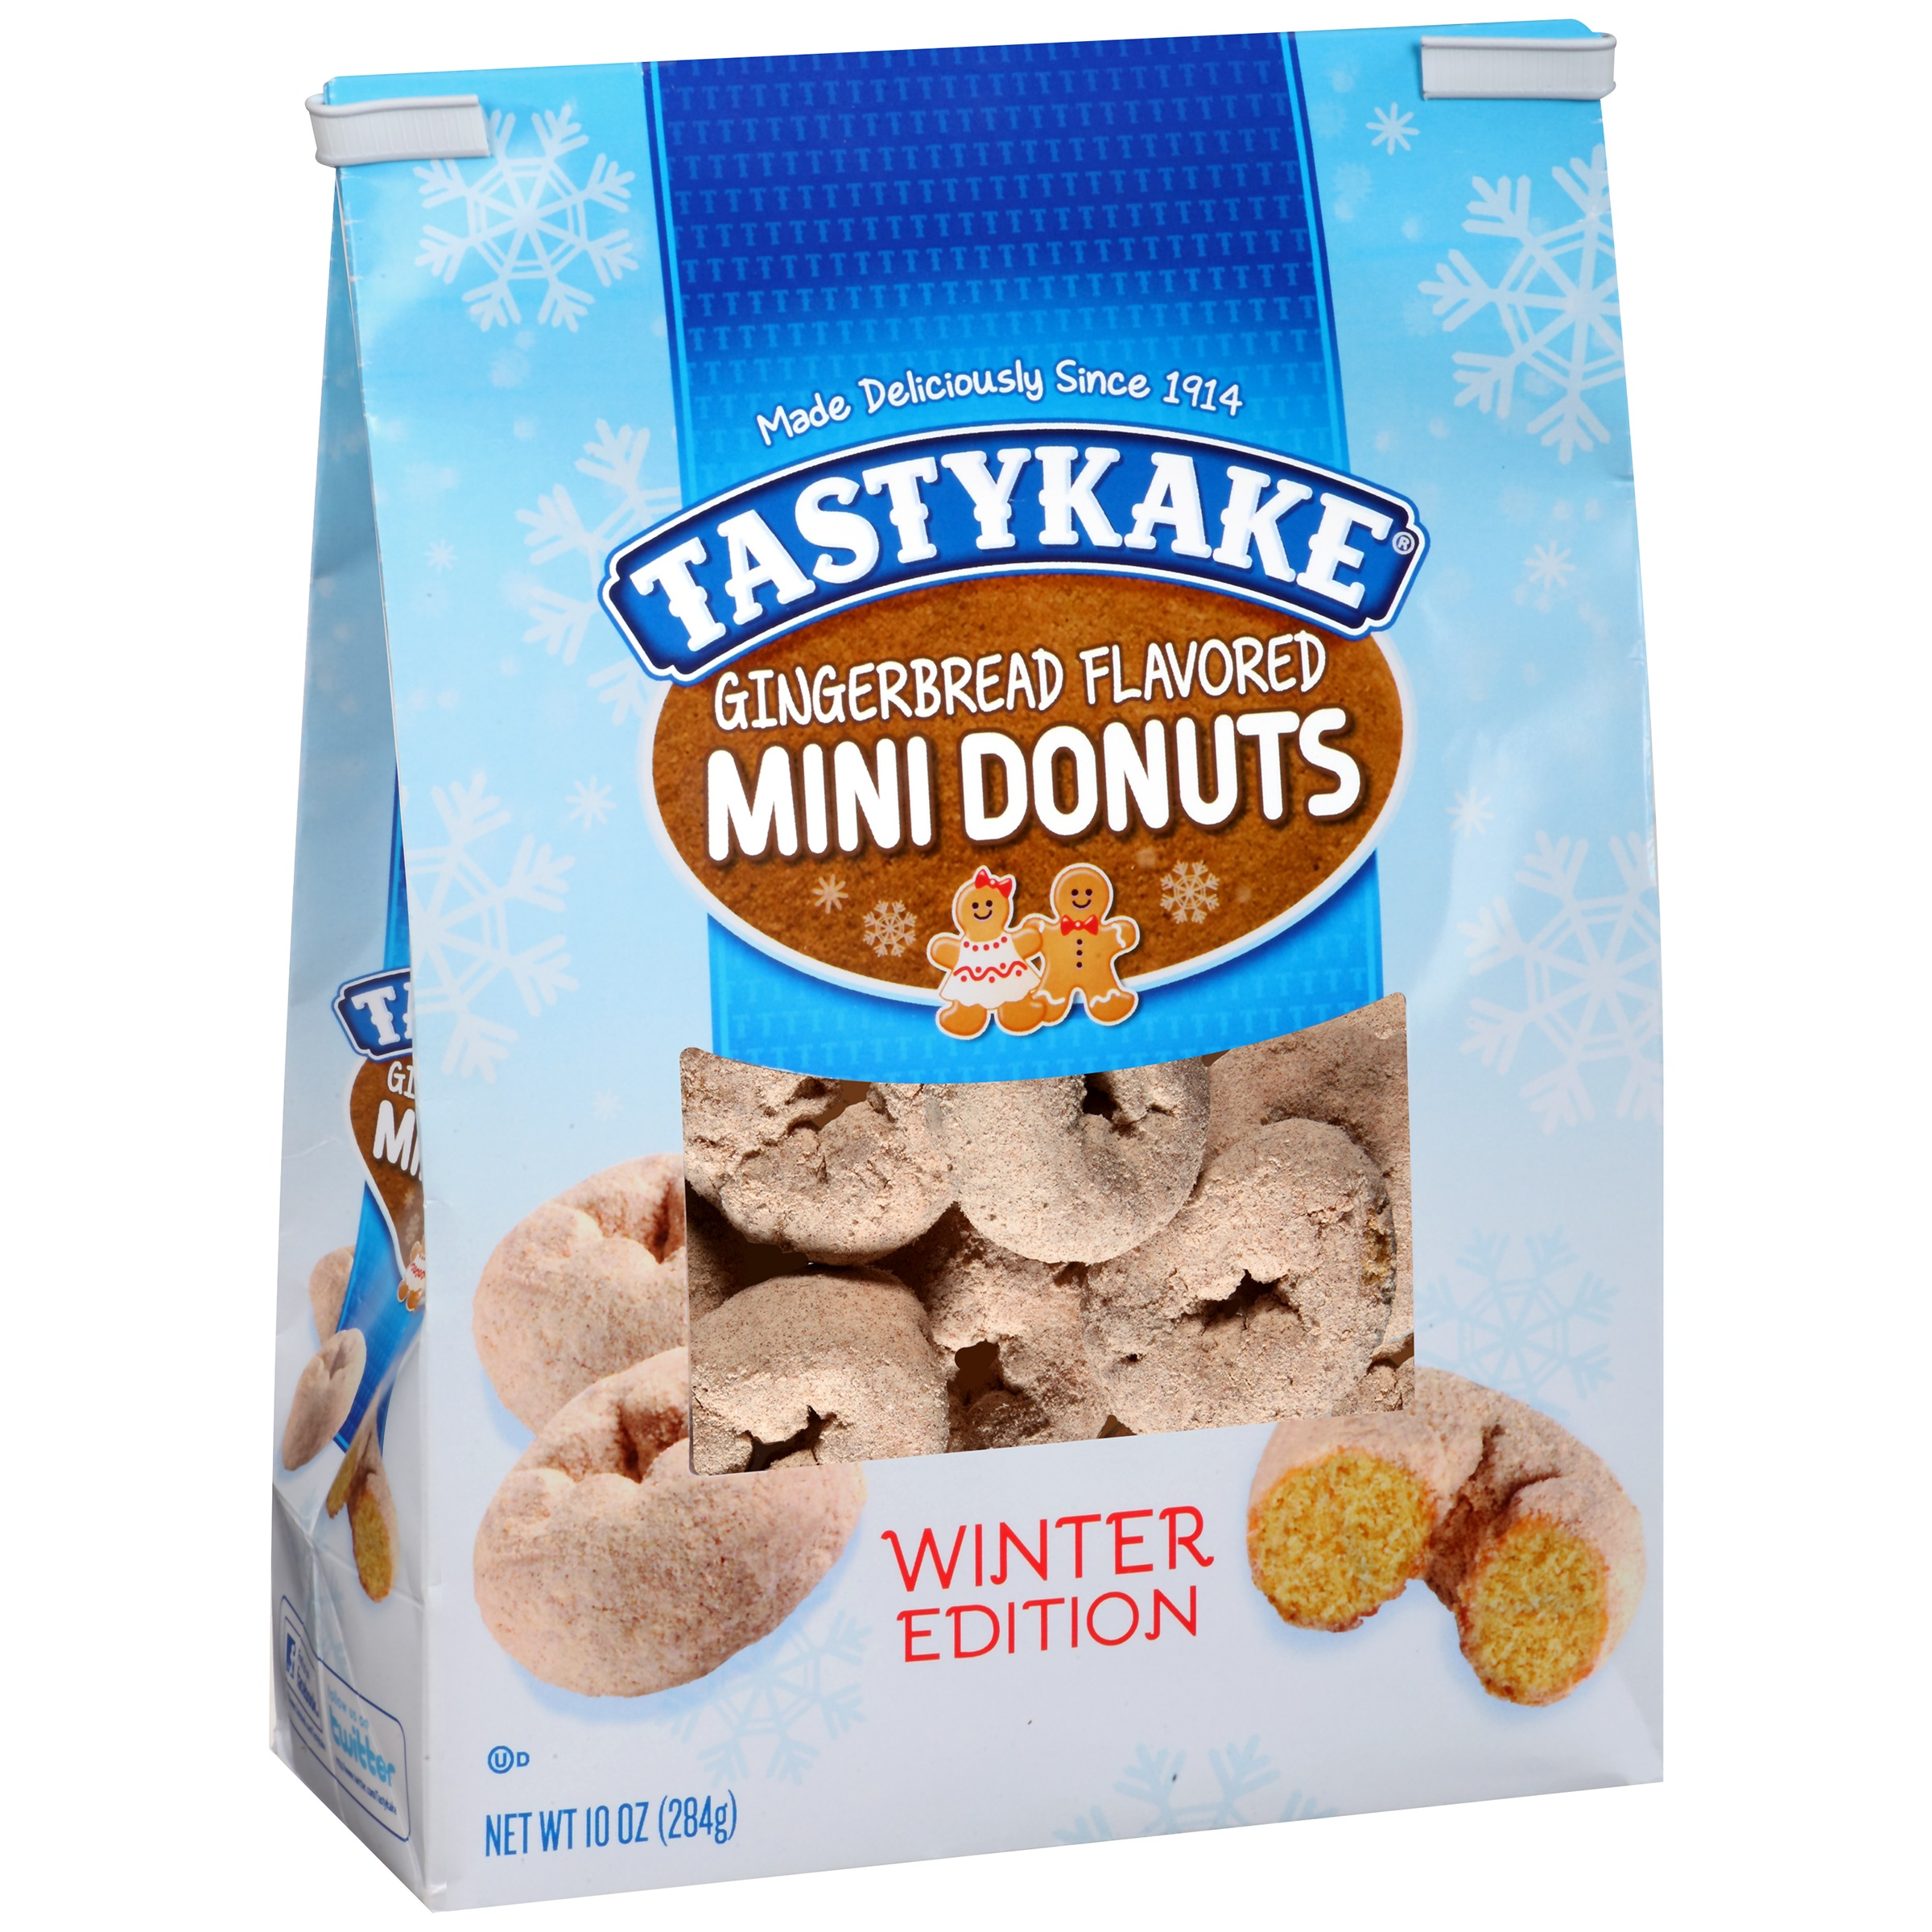 Tastykake® Winter Edition Gingerbread Flavored Mini Donuts 10 oz. Bag